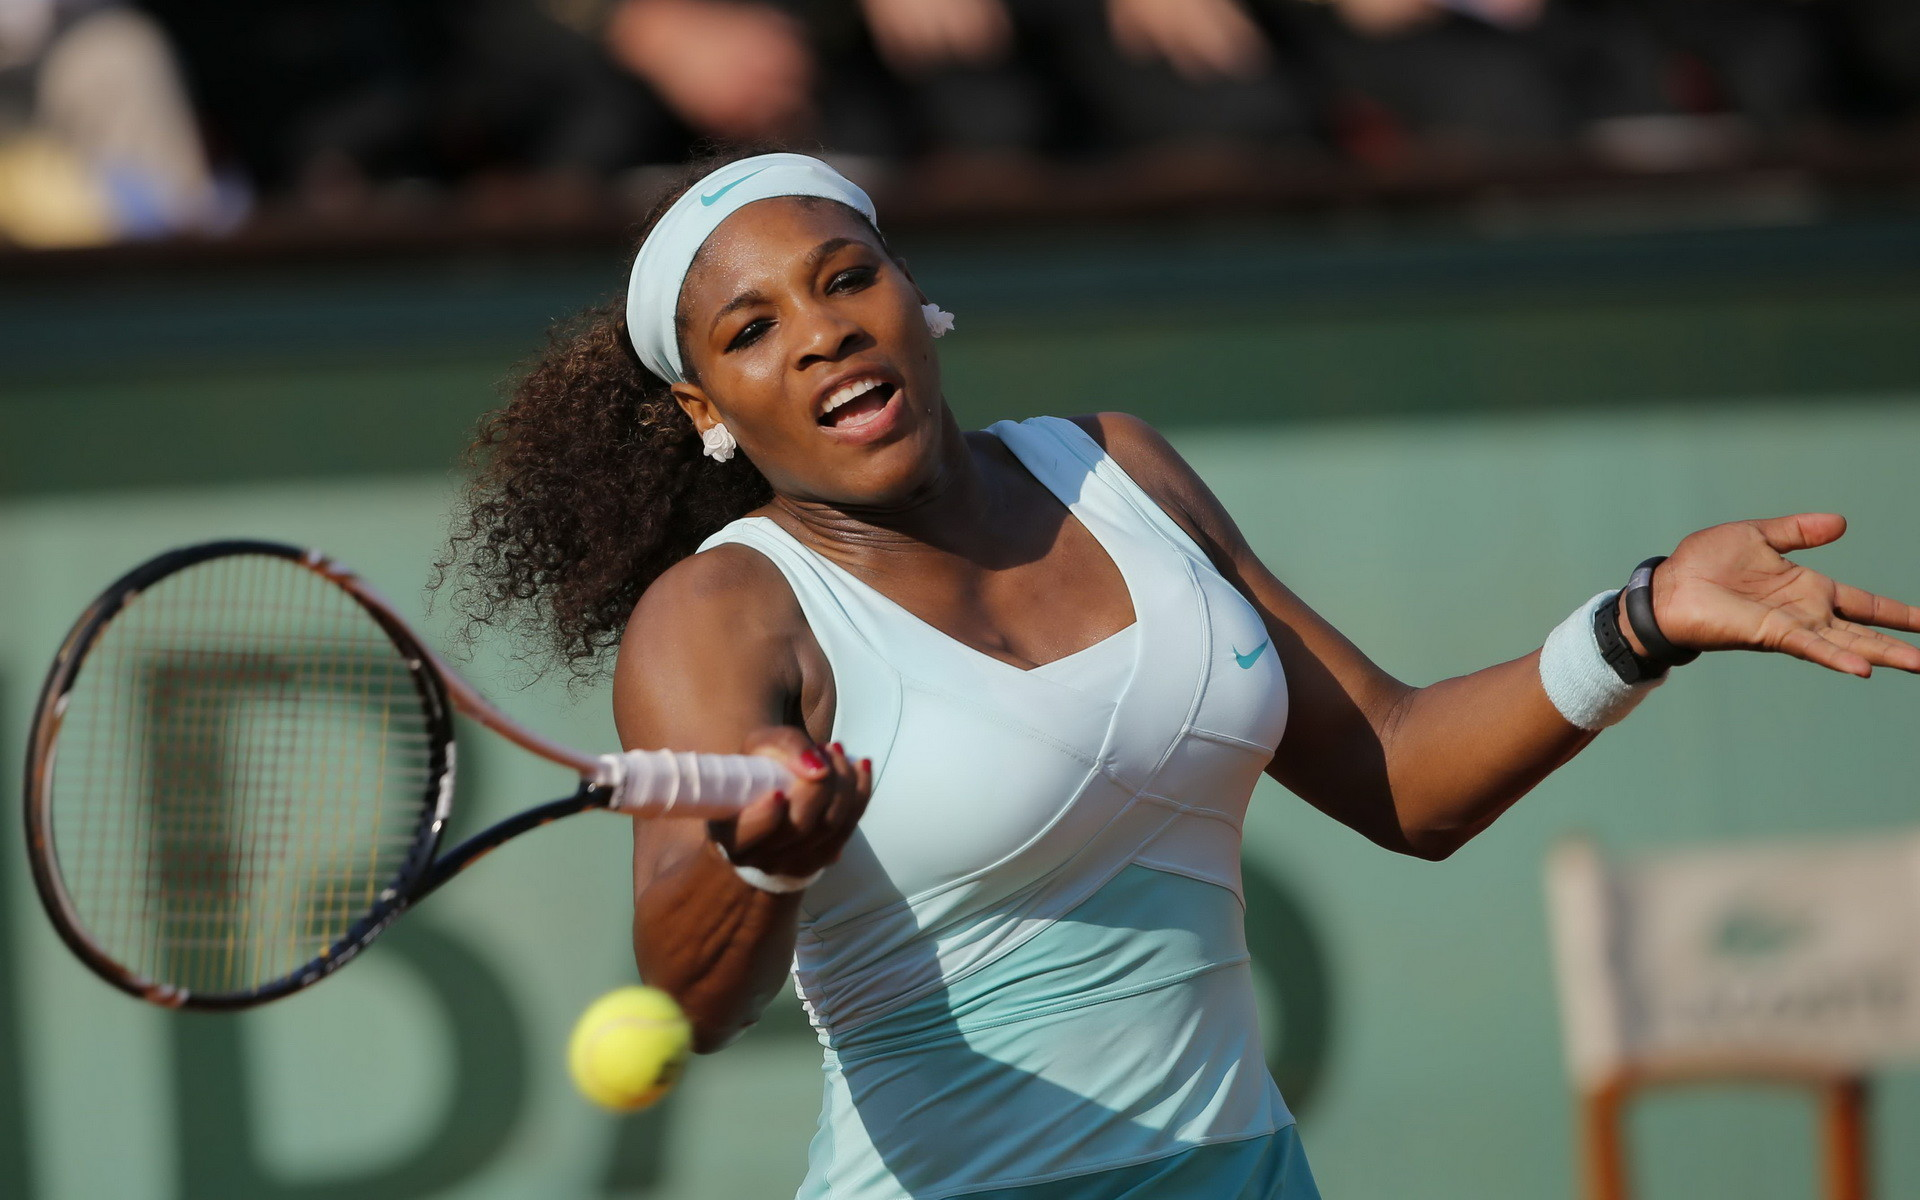 1920x1200 After Long Pursuit Serena Williams Sets Record With 23rd Grand Slam Title O The